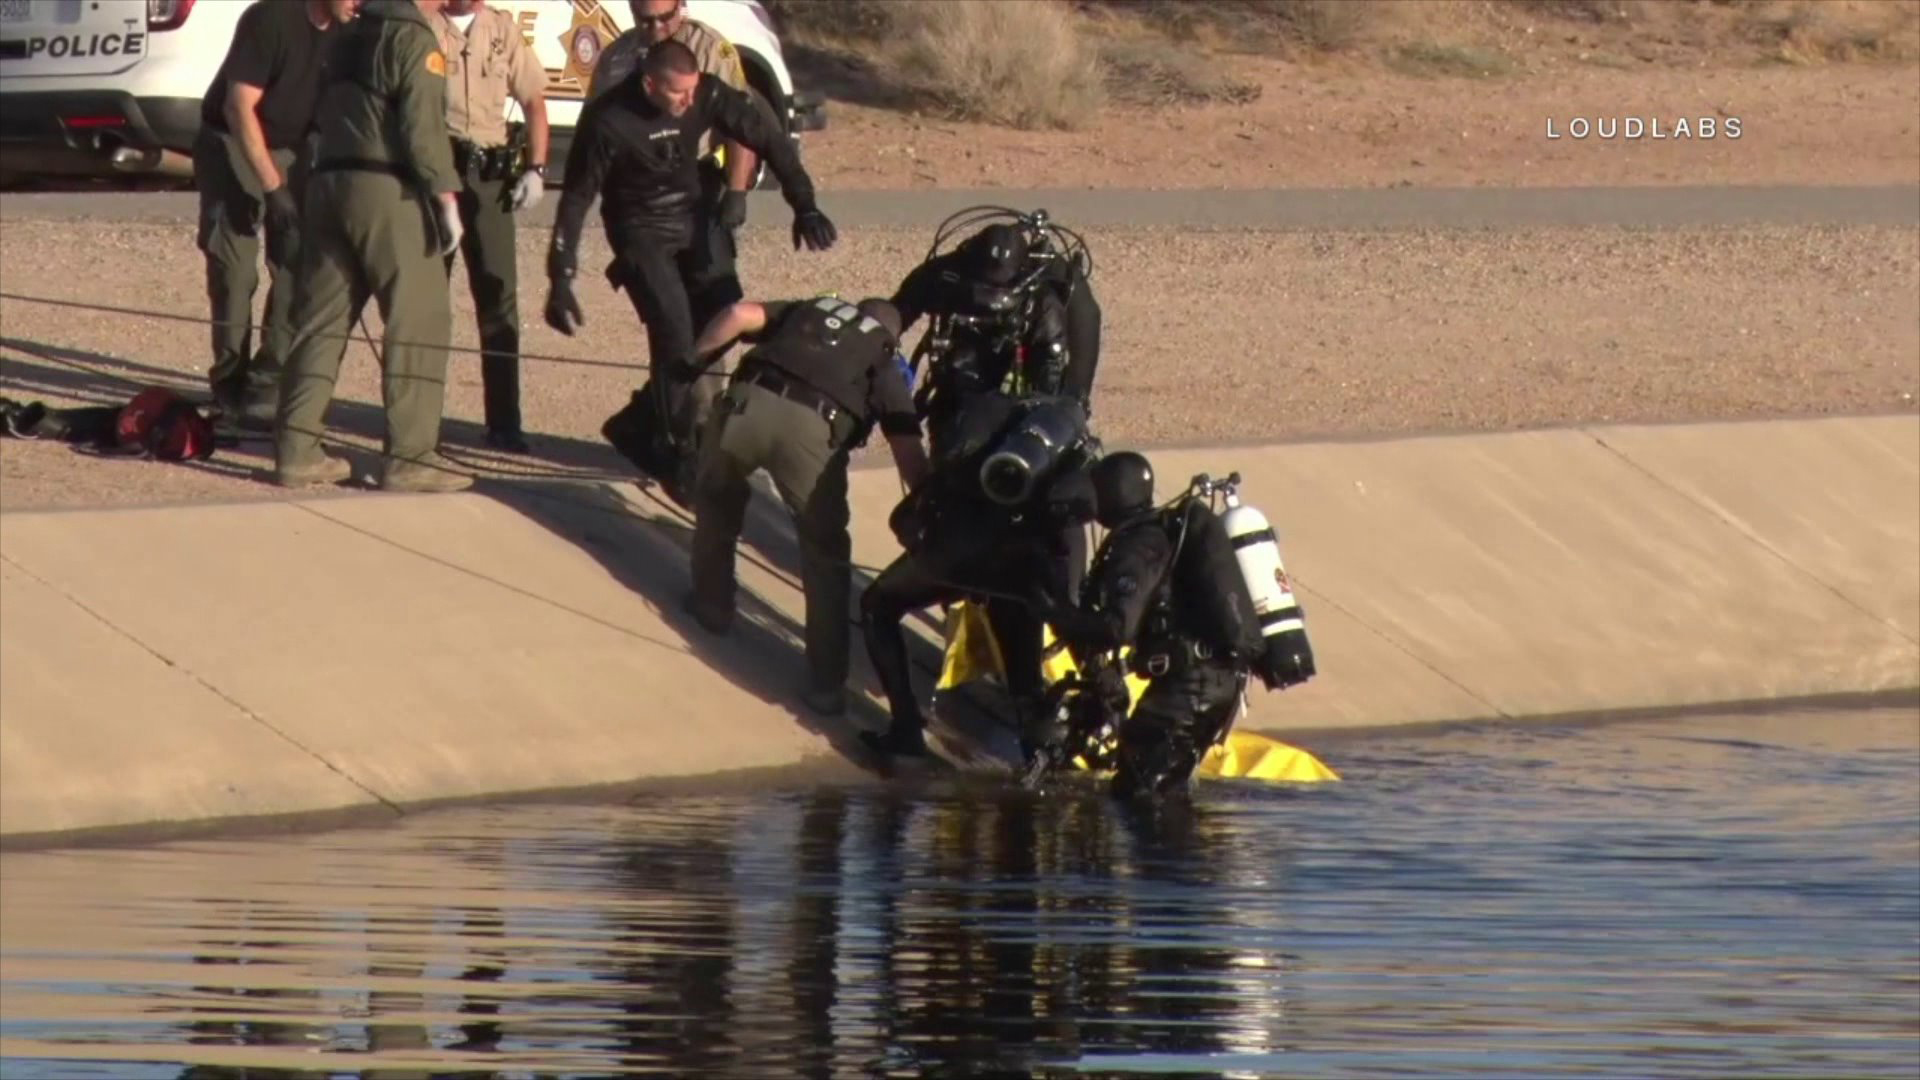 Divers pulled the man's body from the aqueduct on Feb. 4, 2018. (Credit: Loudlabs)